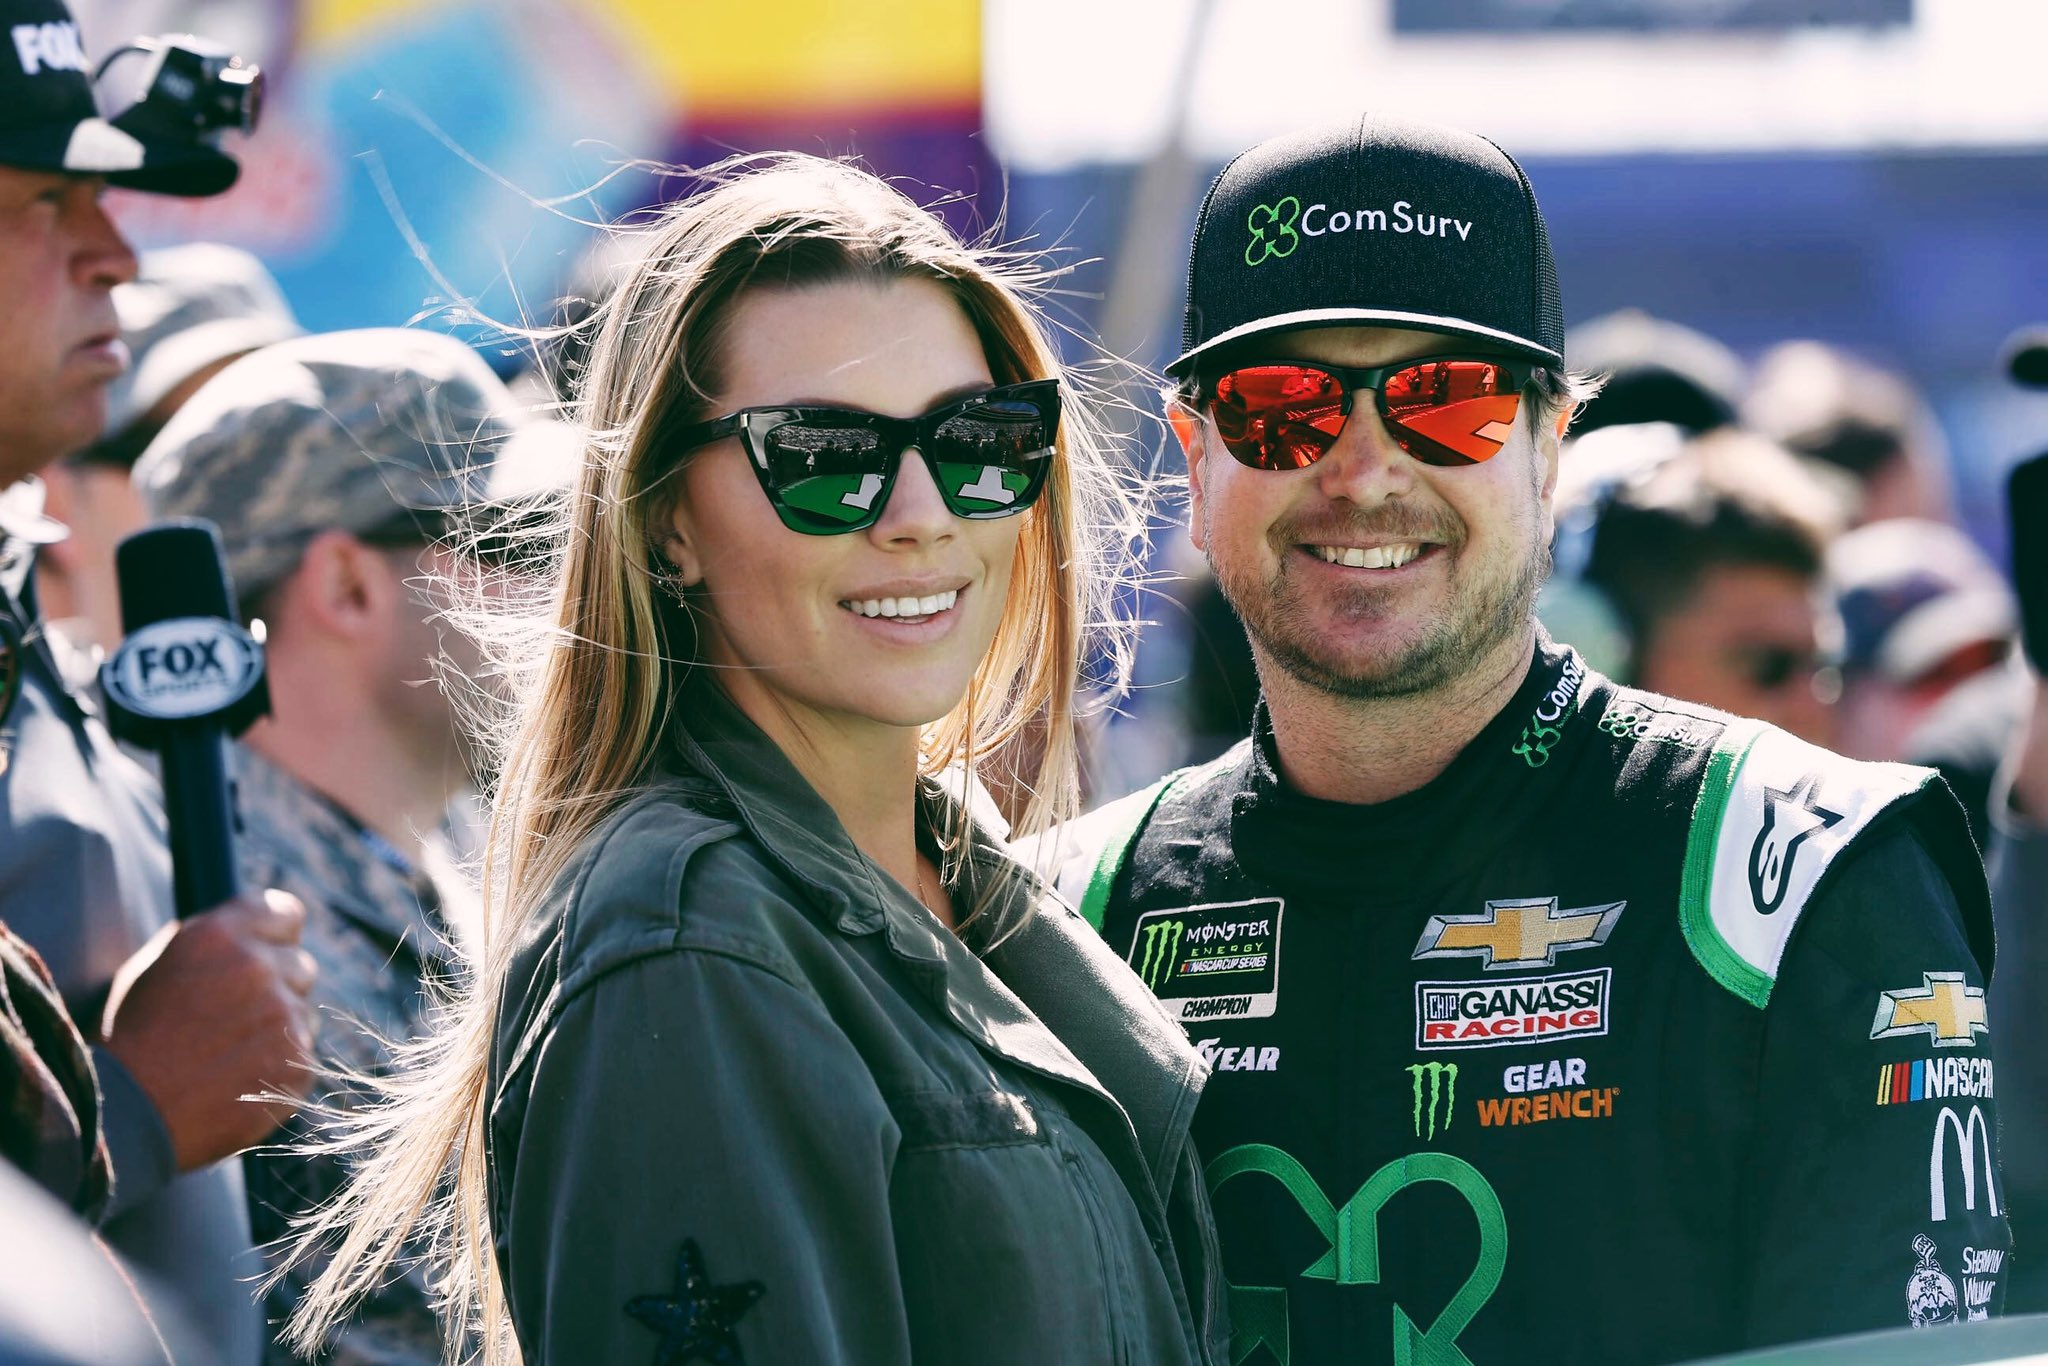 Ashley Busch, wife of NASCAR driver submits Sports Illustrated Swim Edition audition video